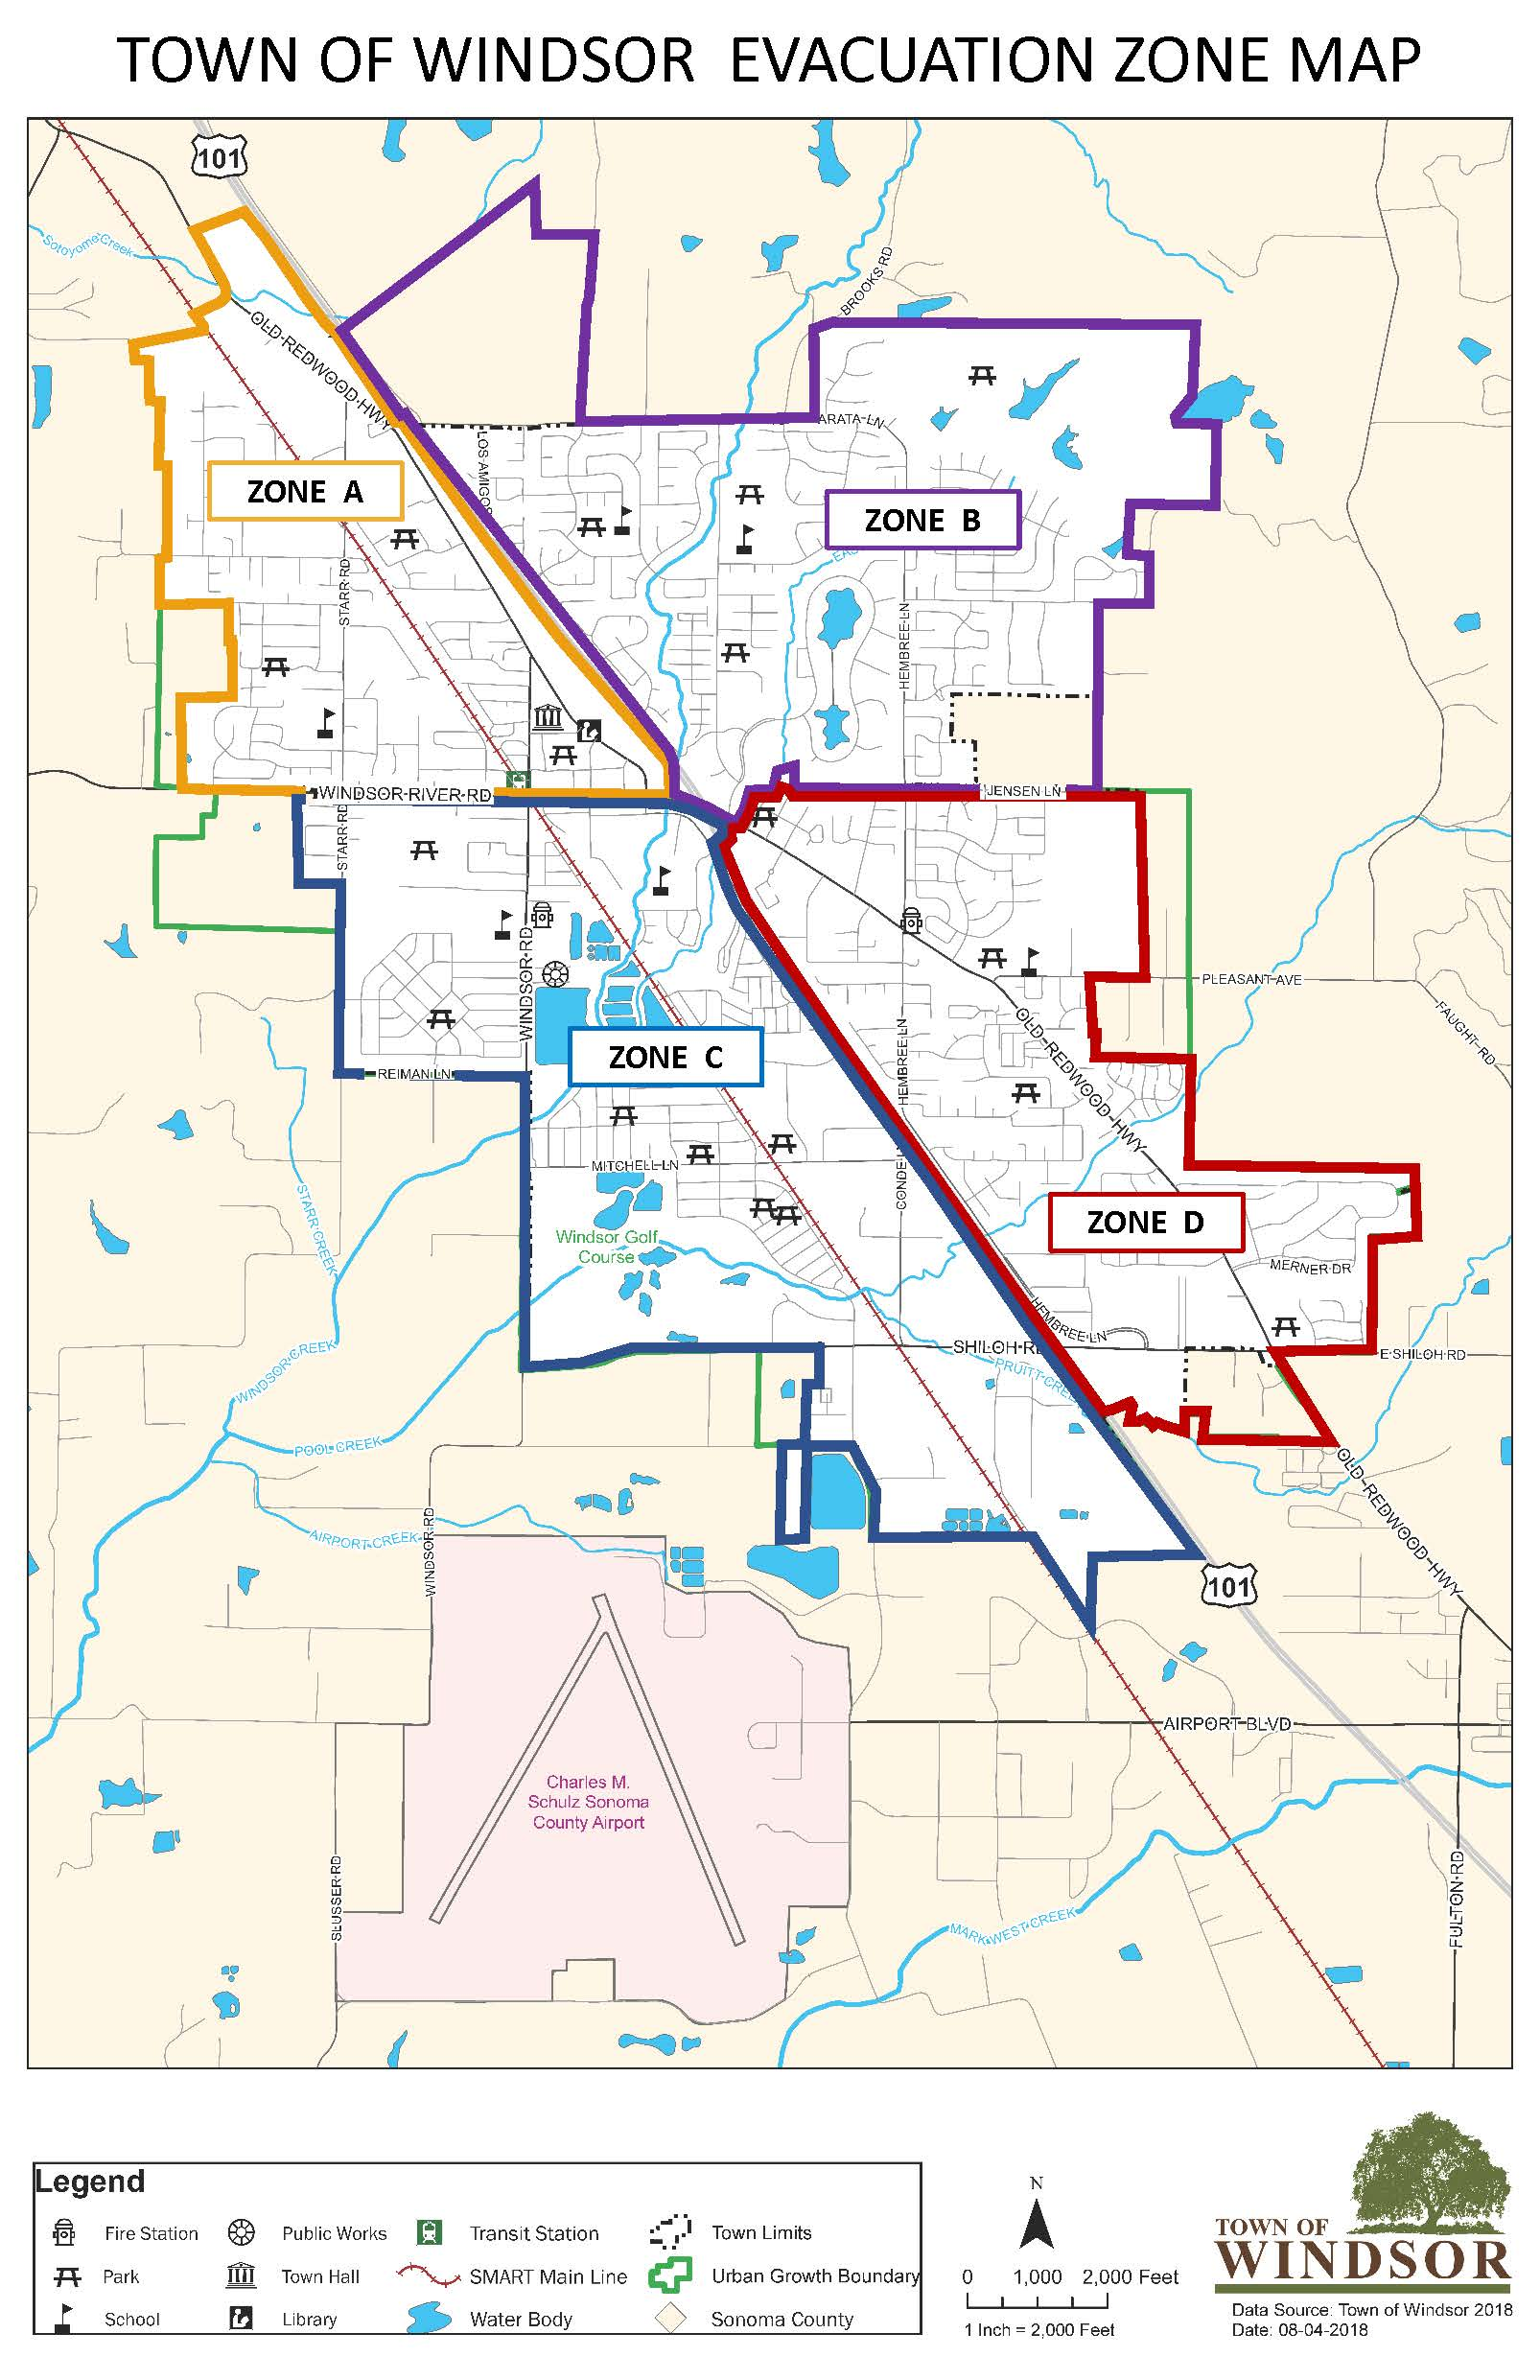 Windsor Evacuation Zones